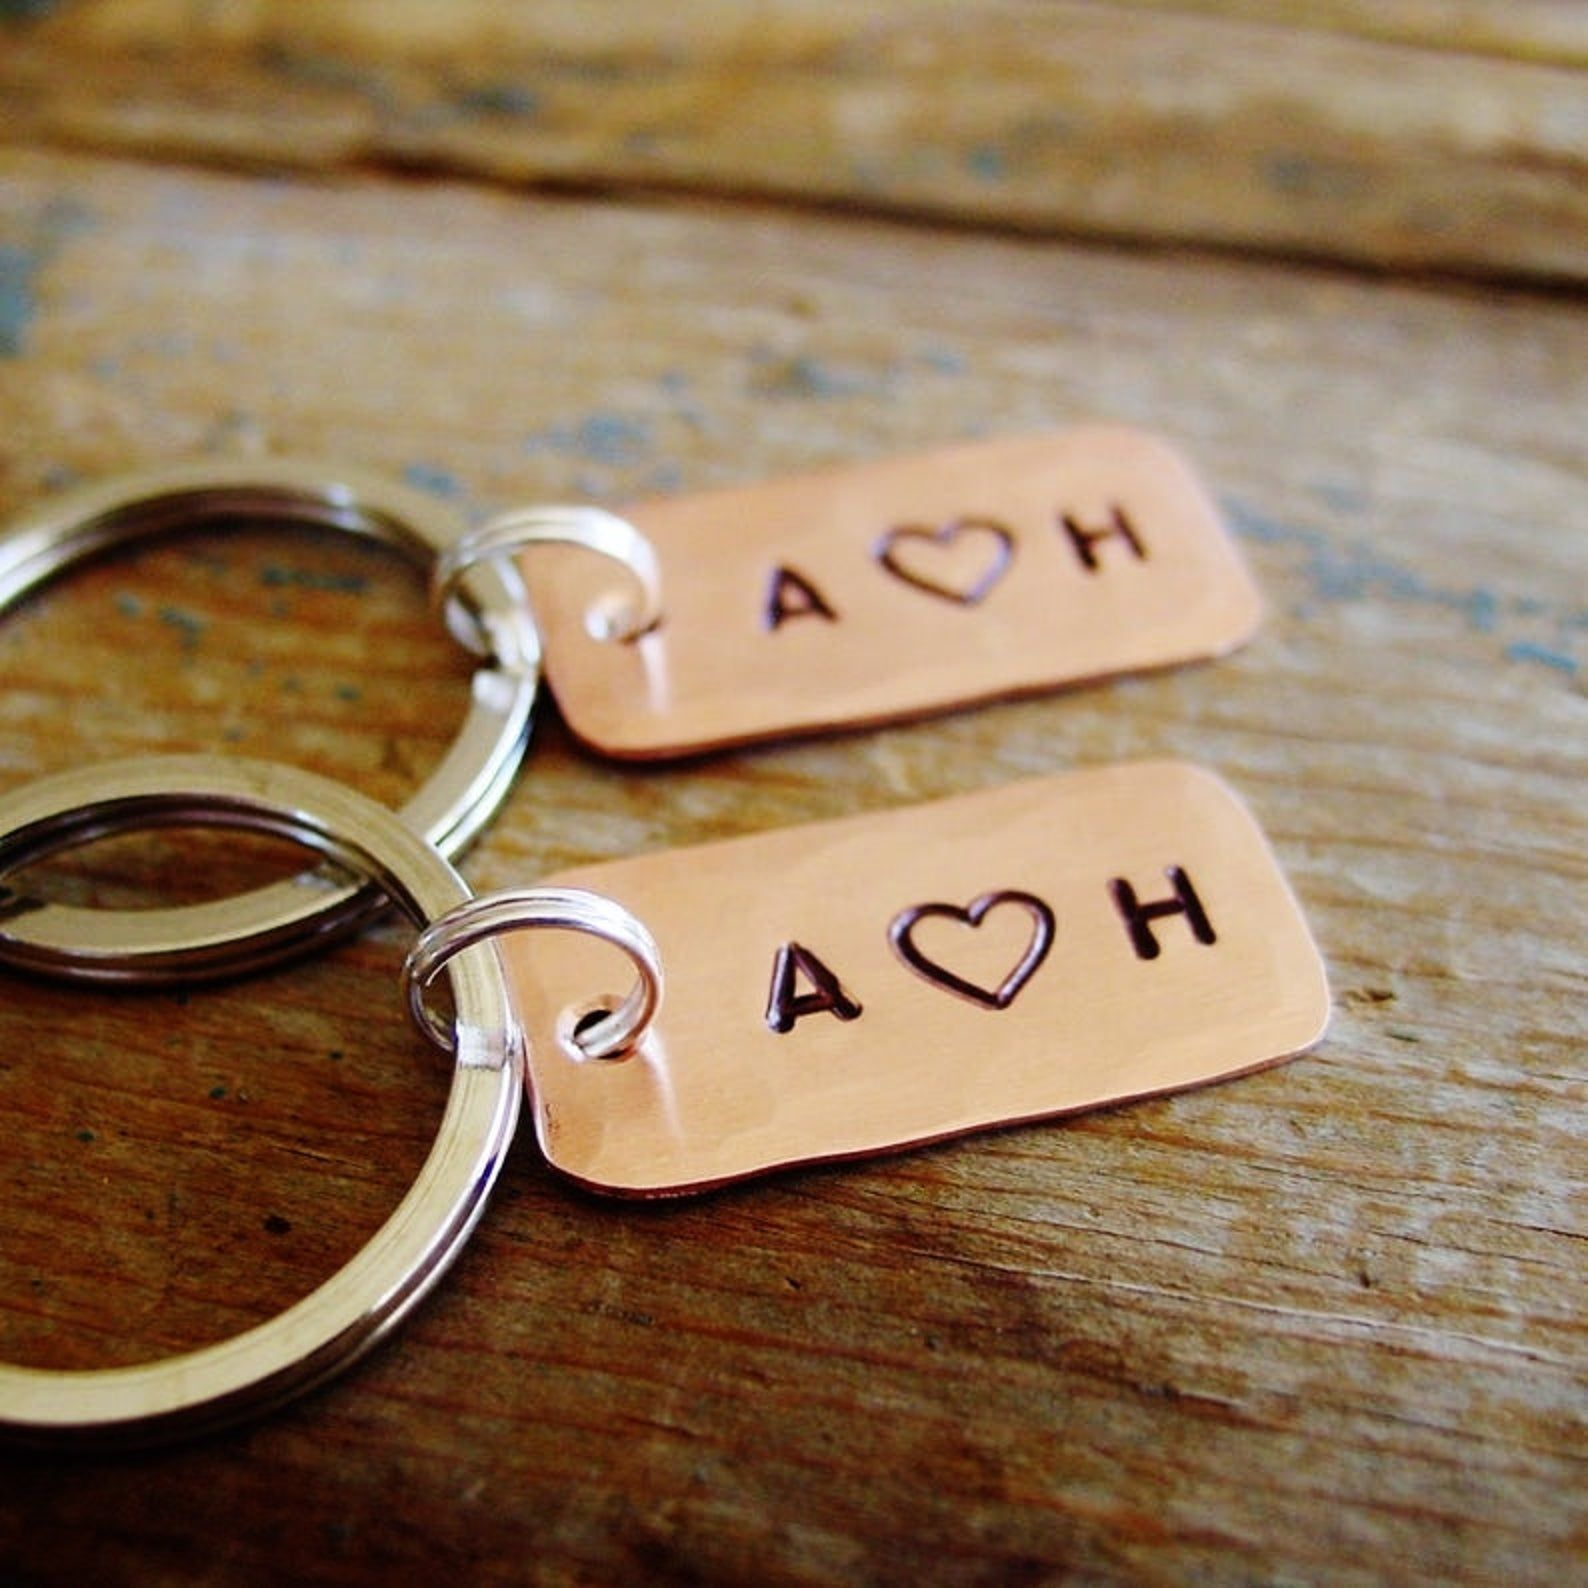 Couple initials keychain set of 2 personalized copper